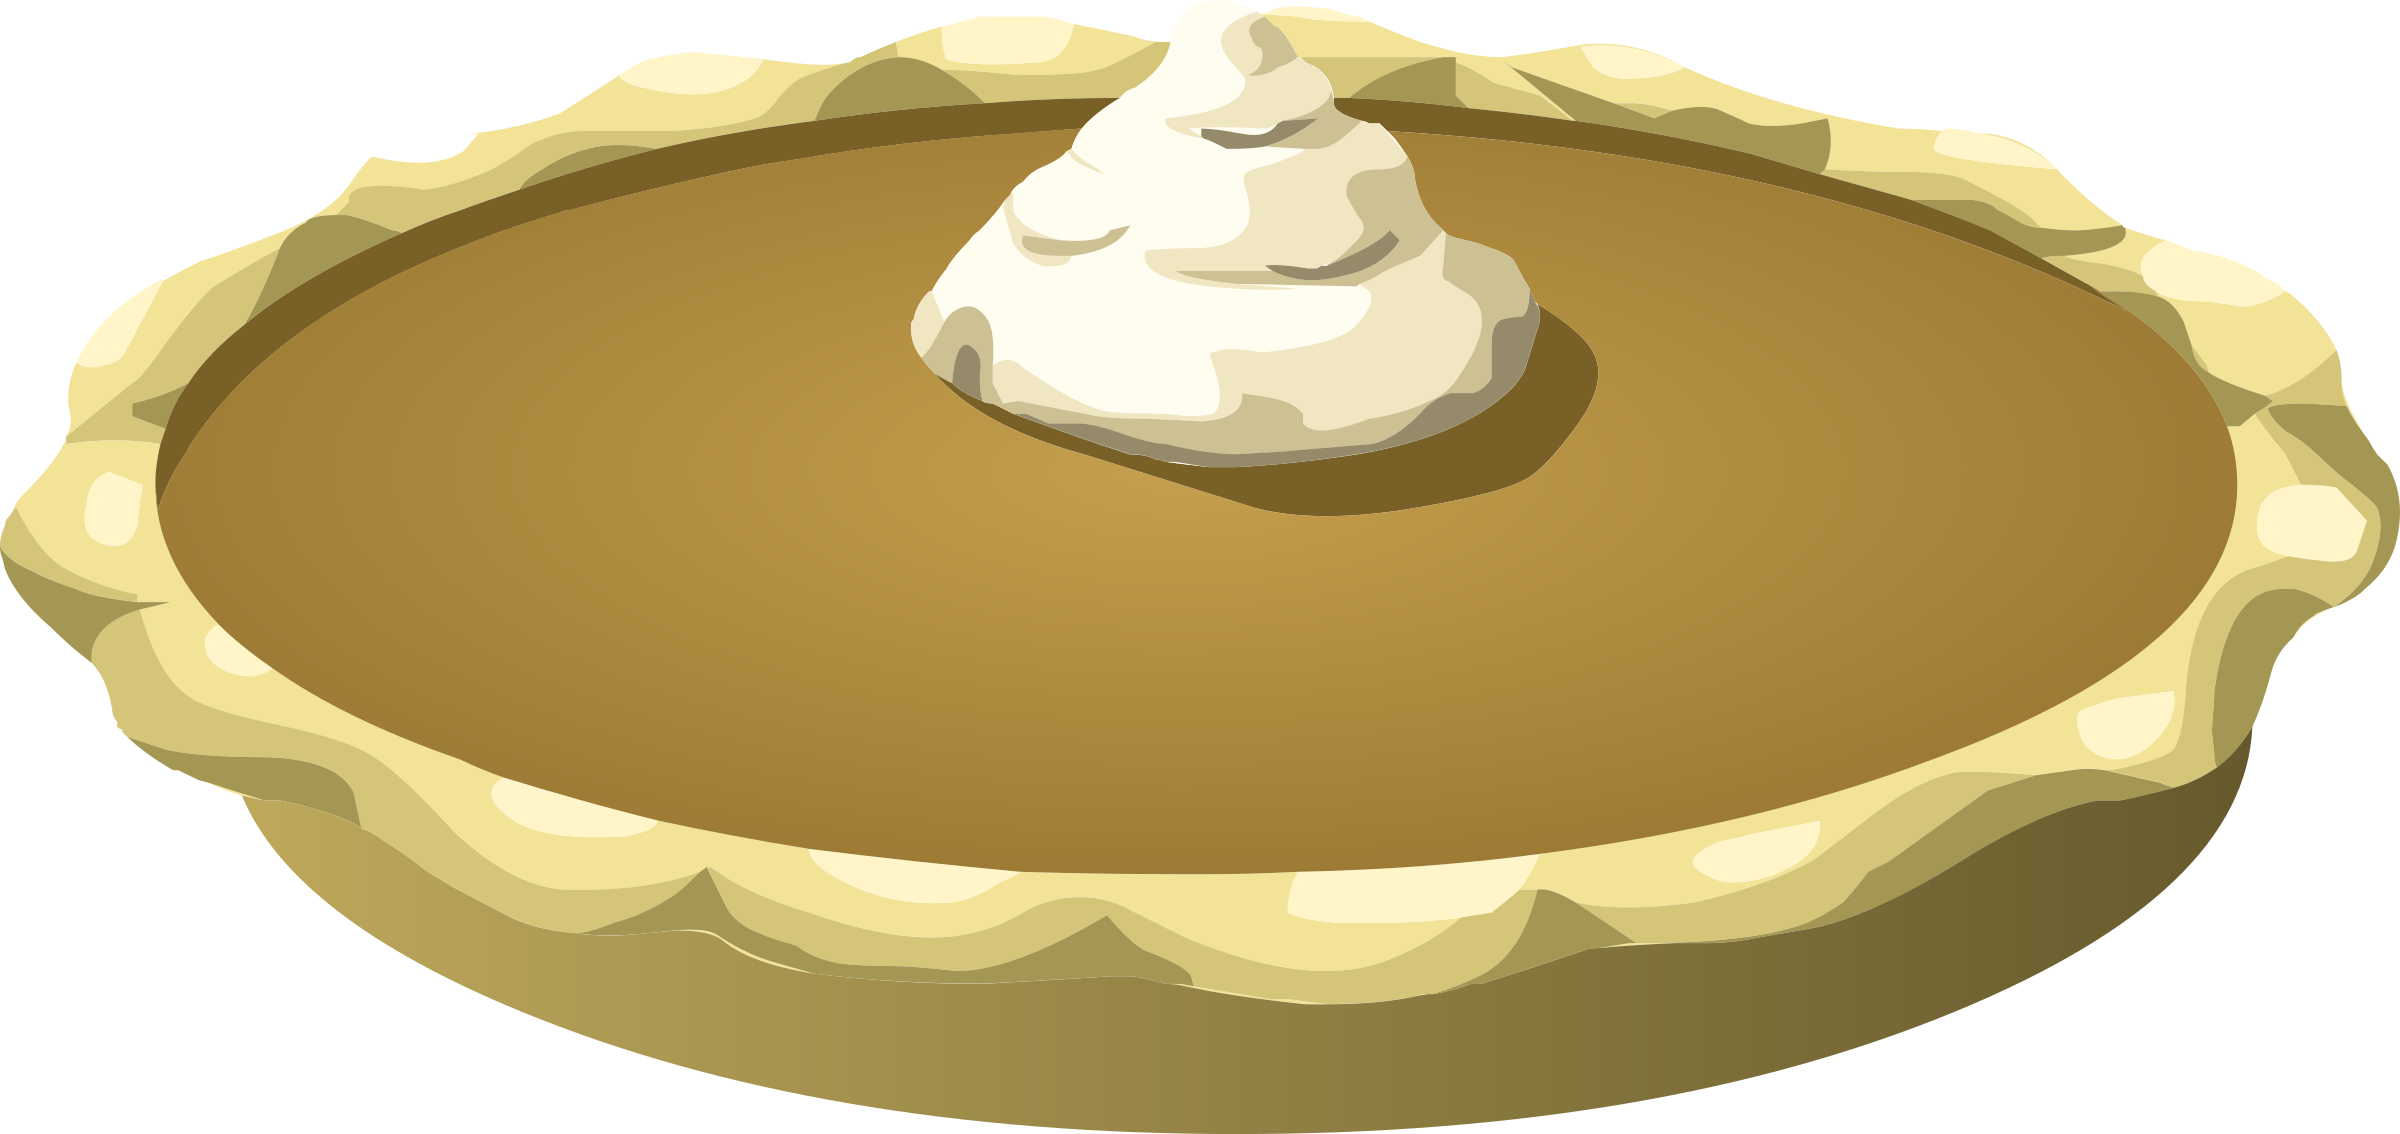 Pie clipart svg. Food pumpkin icons png